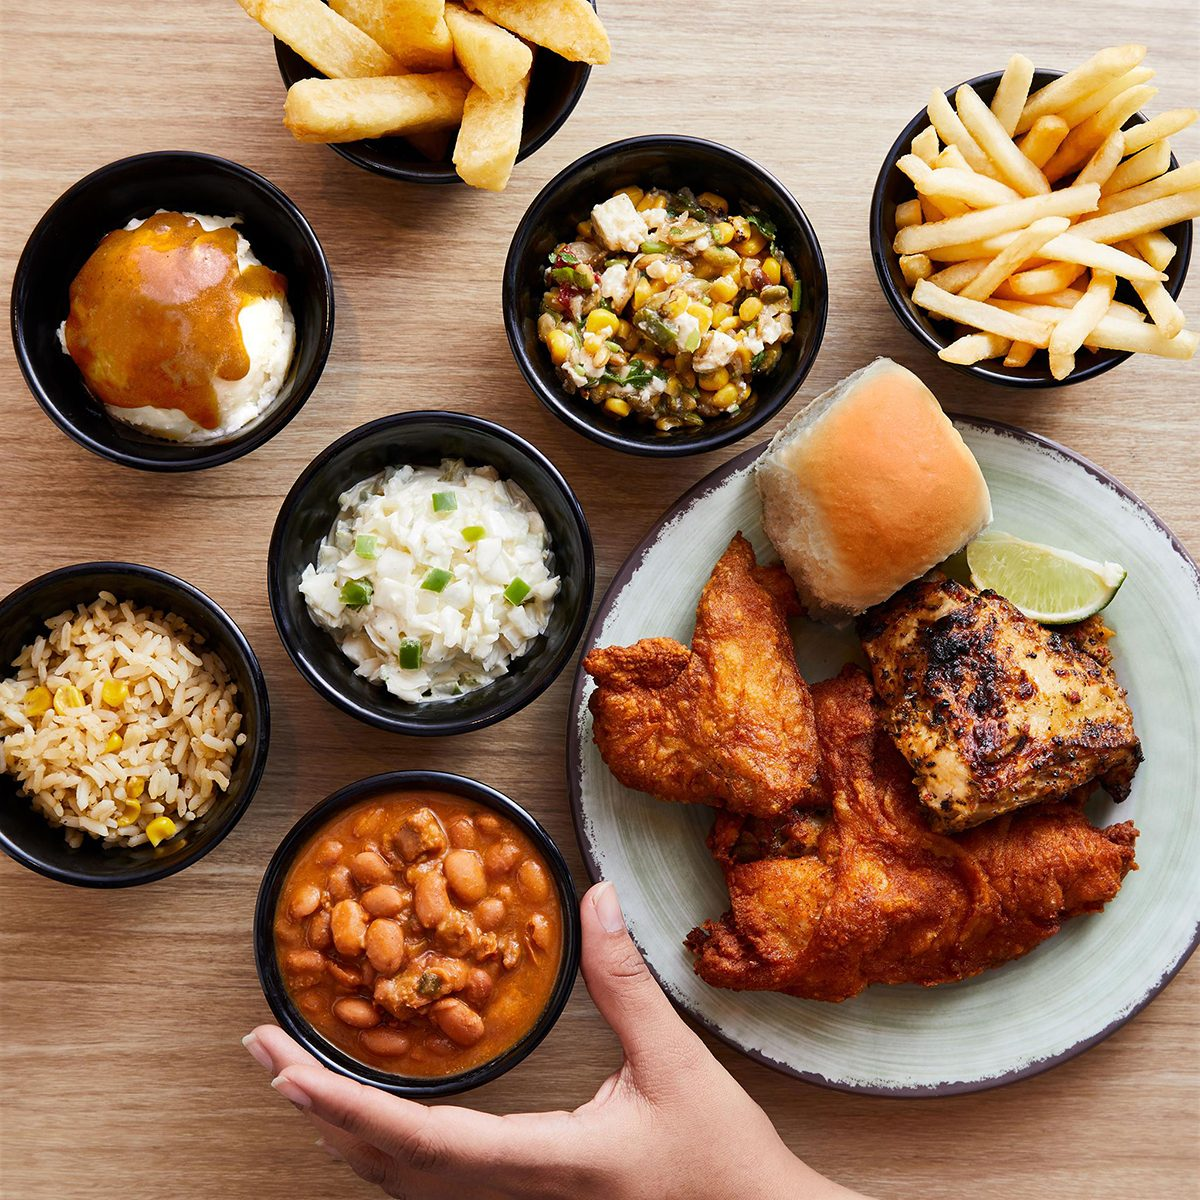 Chicken strips, sandwich and multiple sides